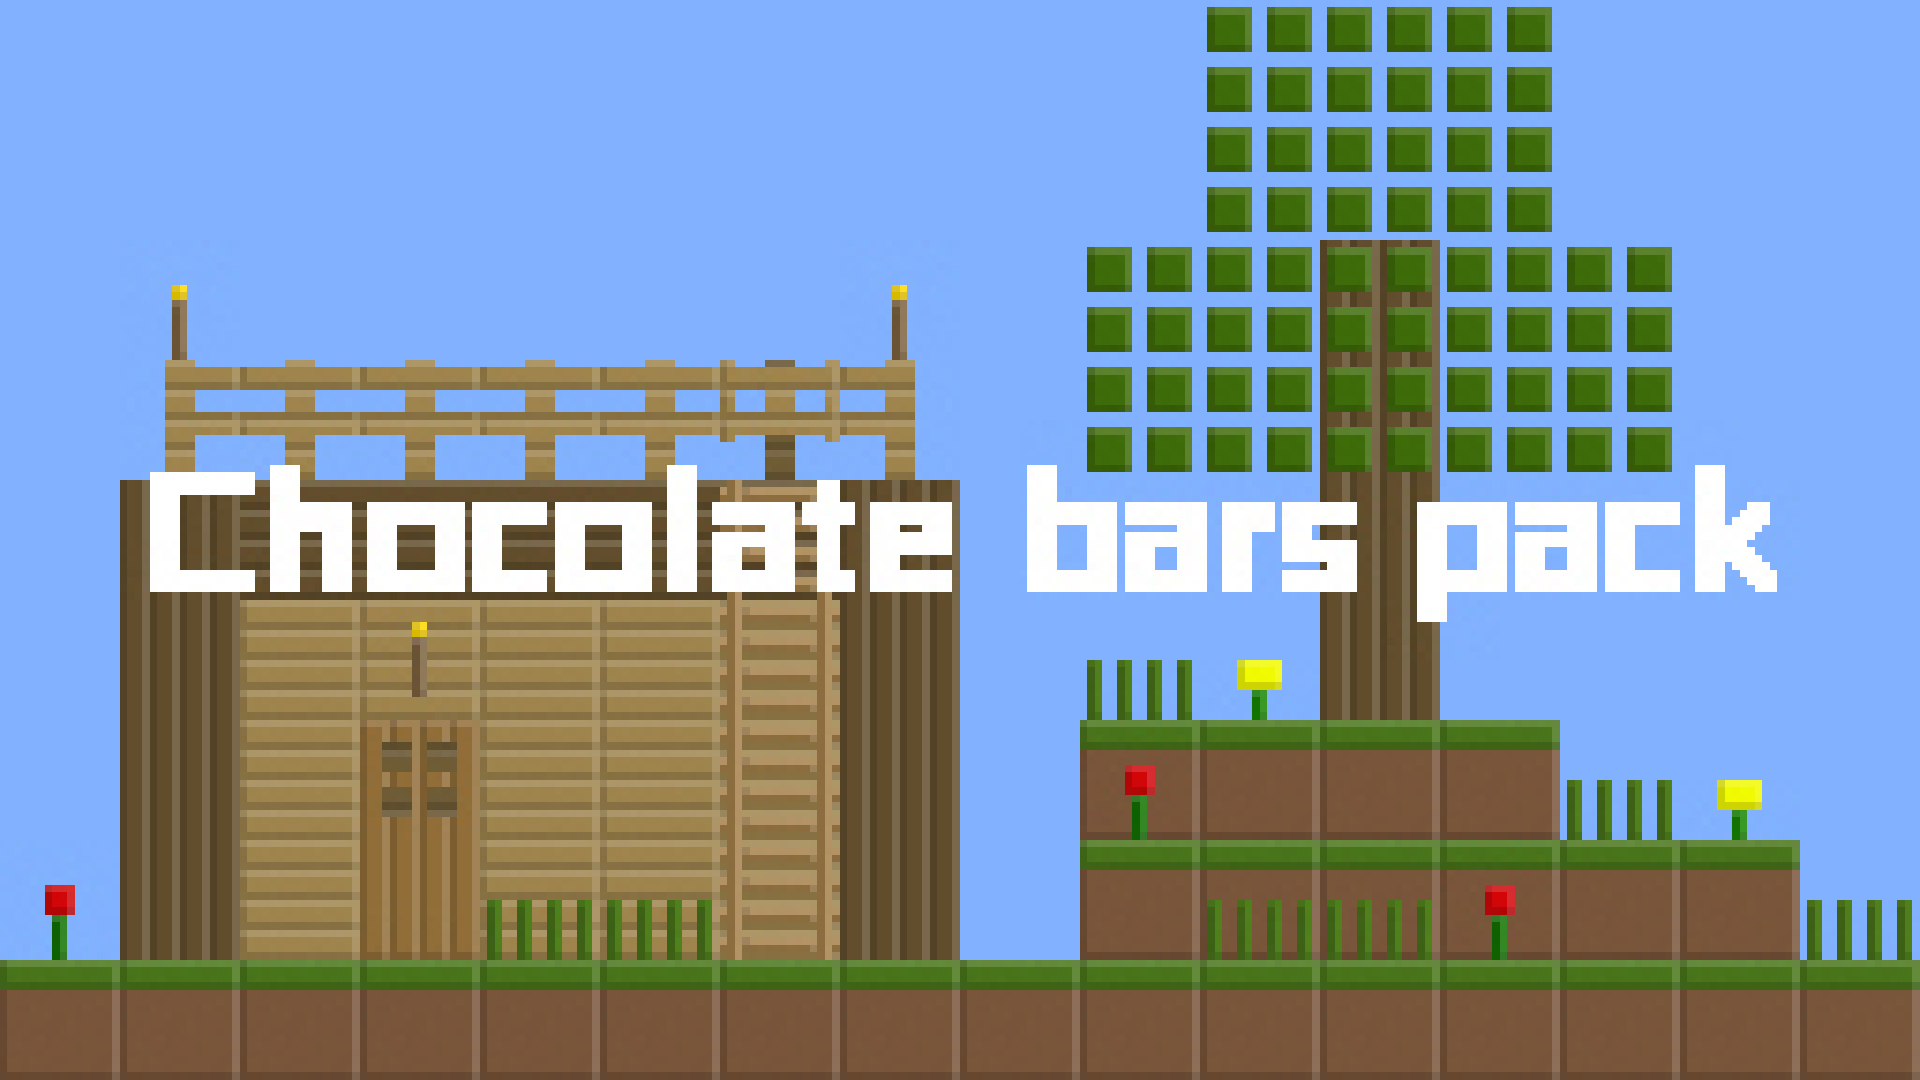 Chocolate bars pack(巧克力材质包)